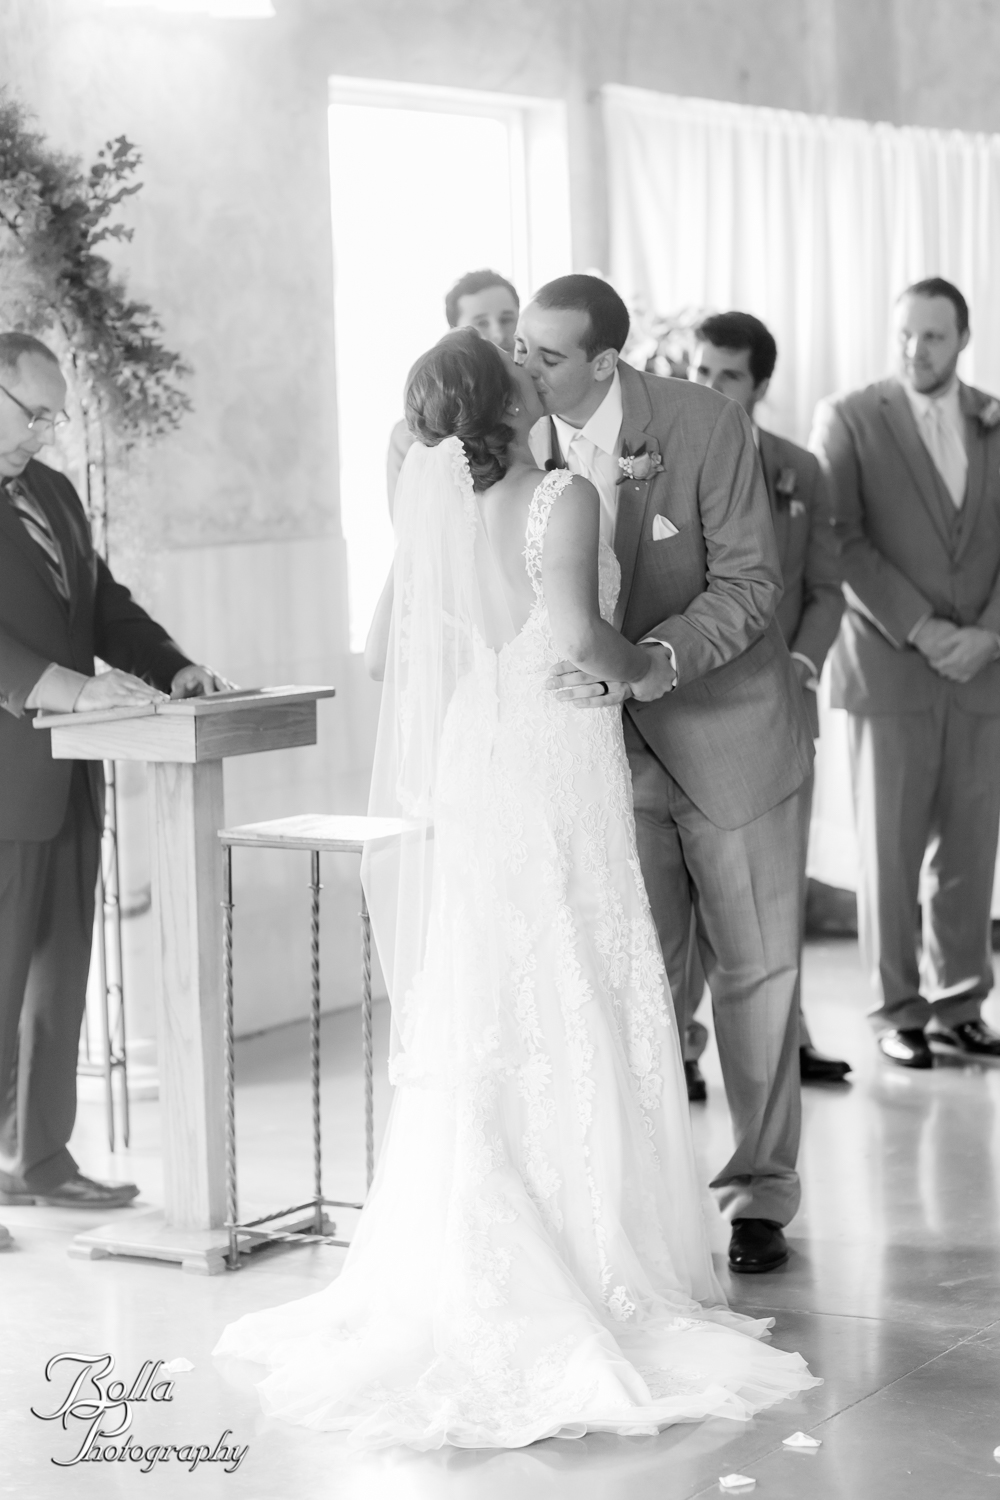 Bolla_Photography_St_Louis_wedding_photographer_Villa_Marie_Winery-0212.jpg